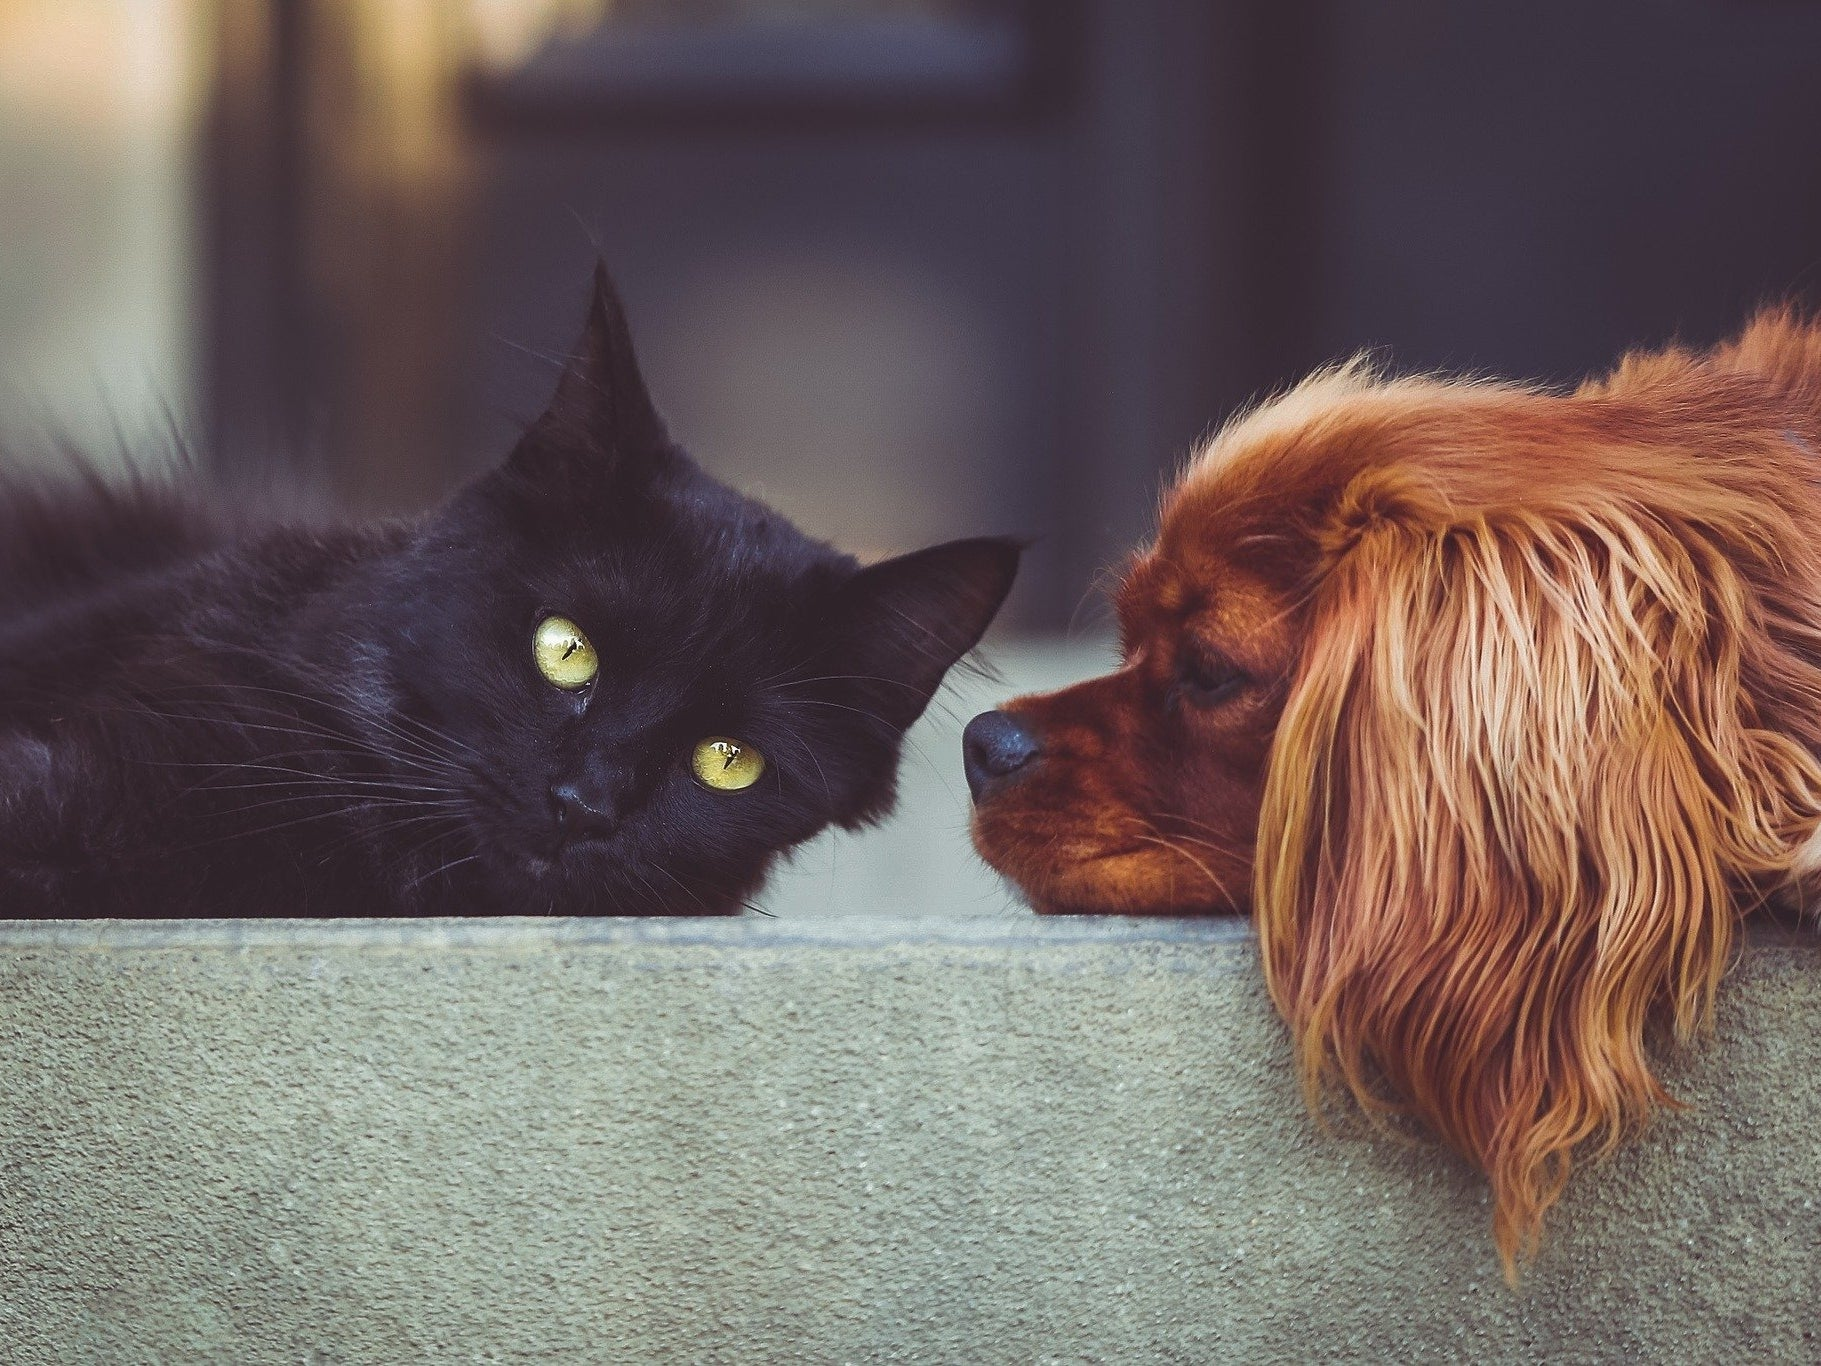 Some identify strictly as cat-people or dog-people. What's your preference?